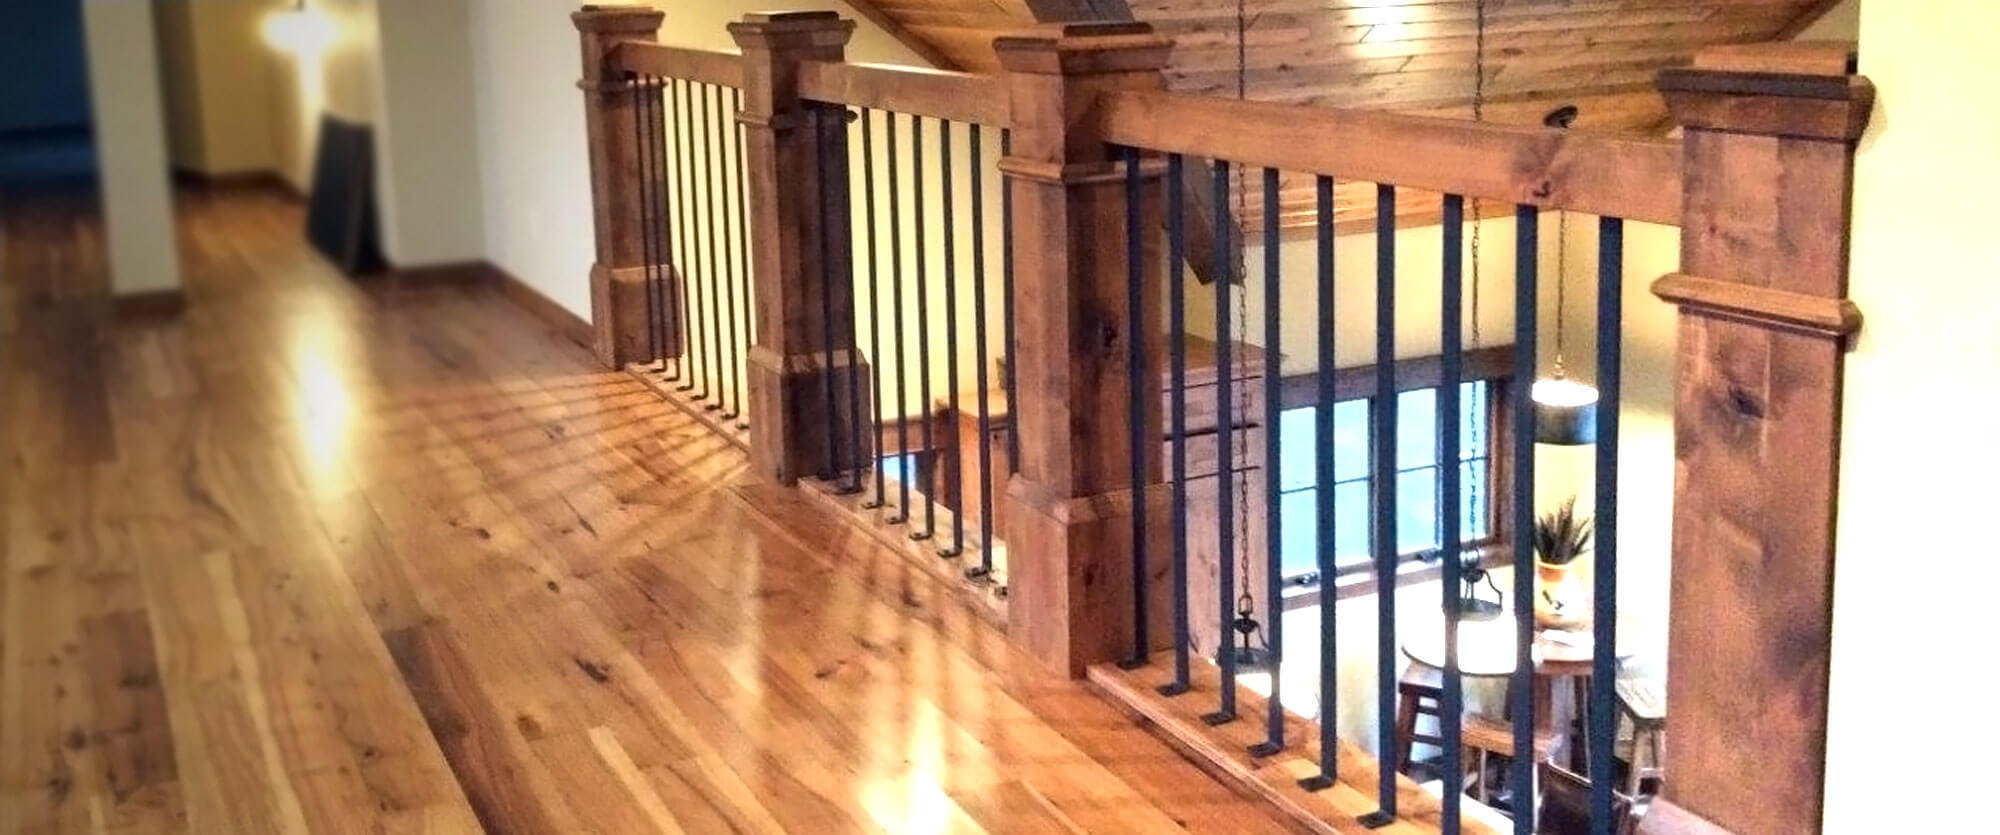 Custom solid wood stair railings; designed, built, and installed by finewood Structures of Browerville, MN